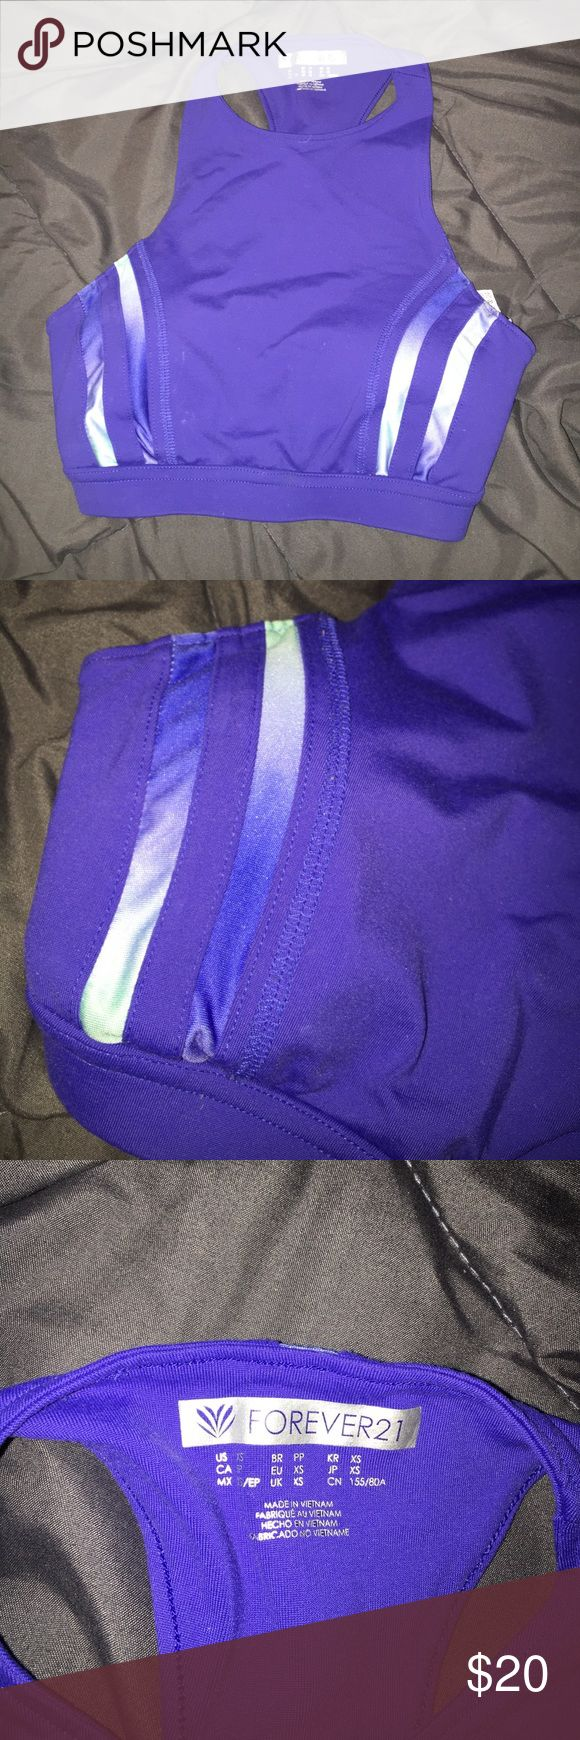 High Neck Sports Bra High Neck Padded Purple Sports Bra purchased from Forever21; excellent condition worn 3-4 times max. Pads are able to be taken out or put in. Logo on back is reflective. ‼️Not VS just using brand for exposure‼️ PINK Victoria's Secret Intimates & Sleepwear Bras